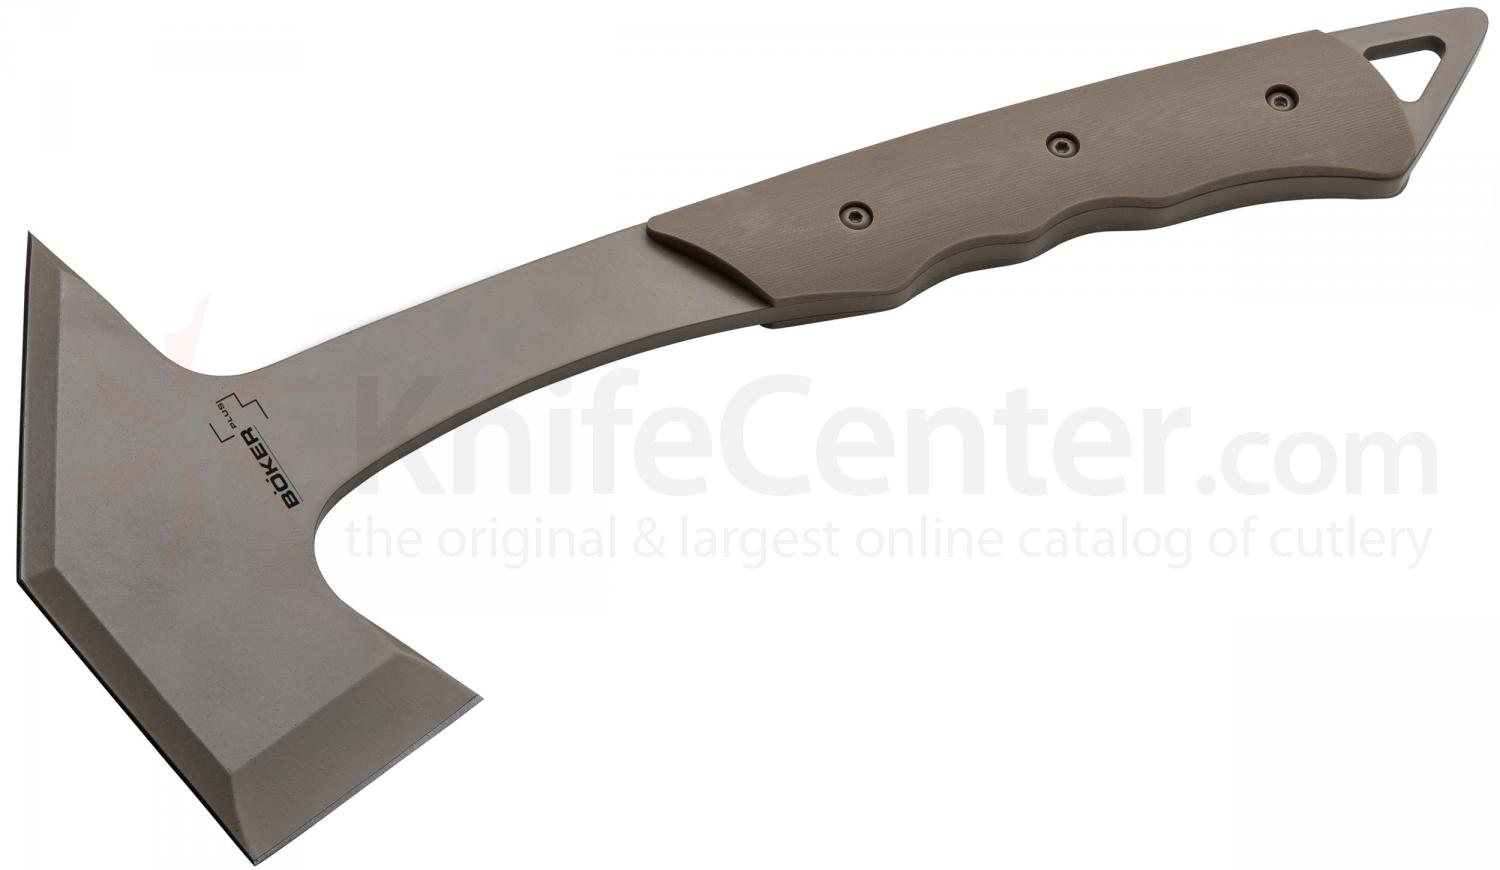 Boker Plus Carnivore Tomahawk 14.25 inch Overall, Tan G10 Handles, Kydex Sheath